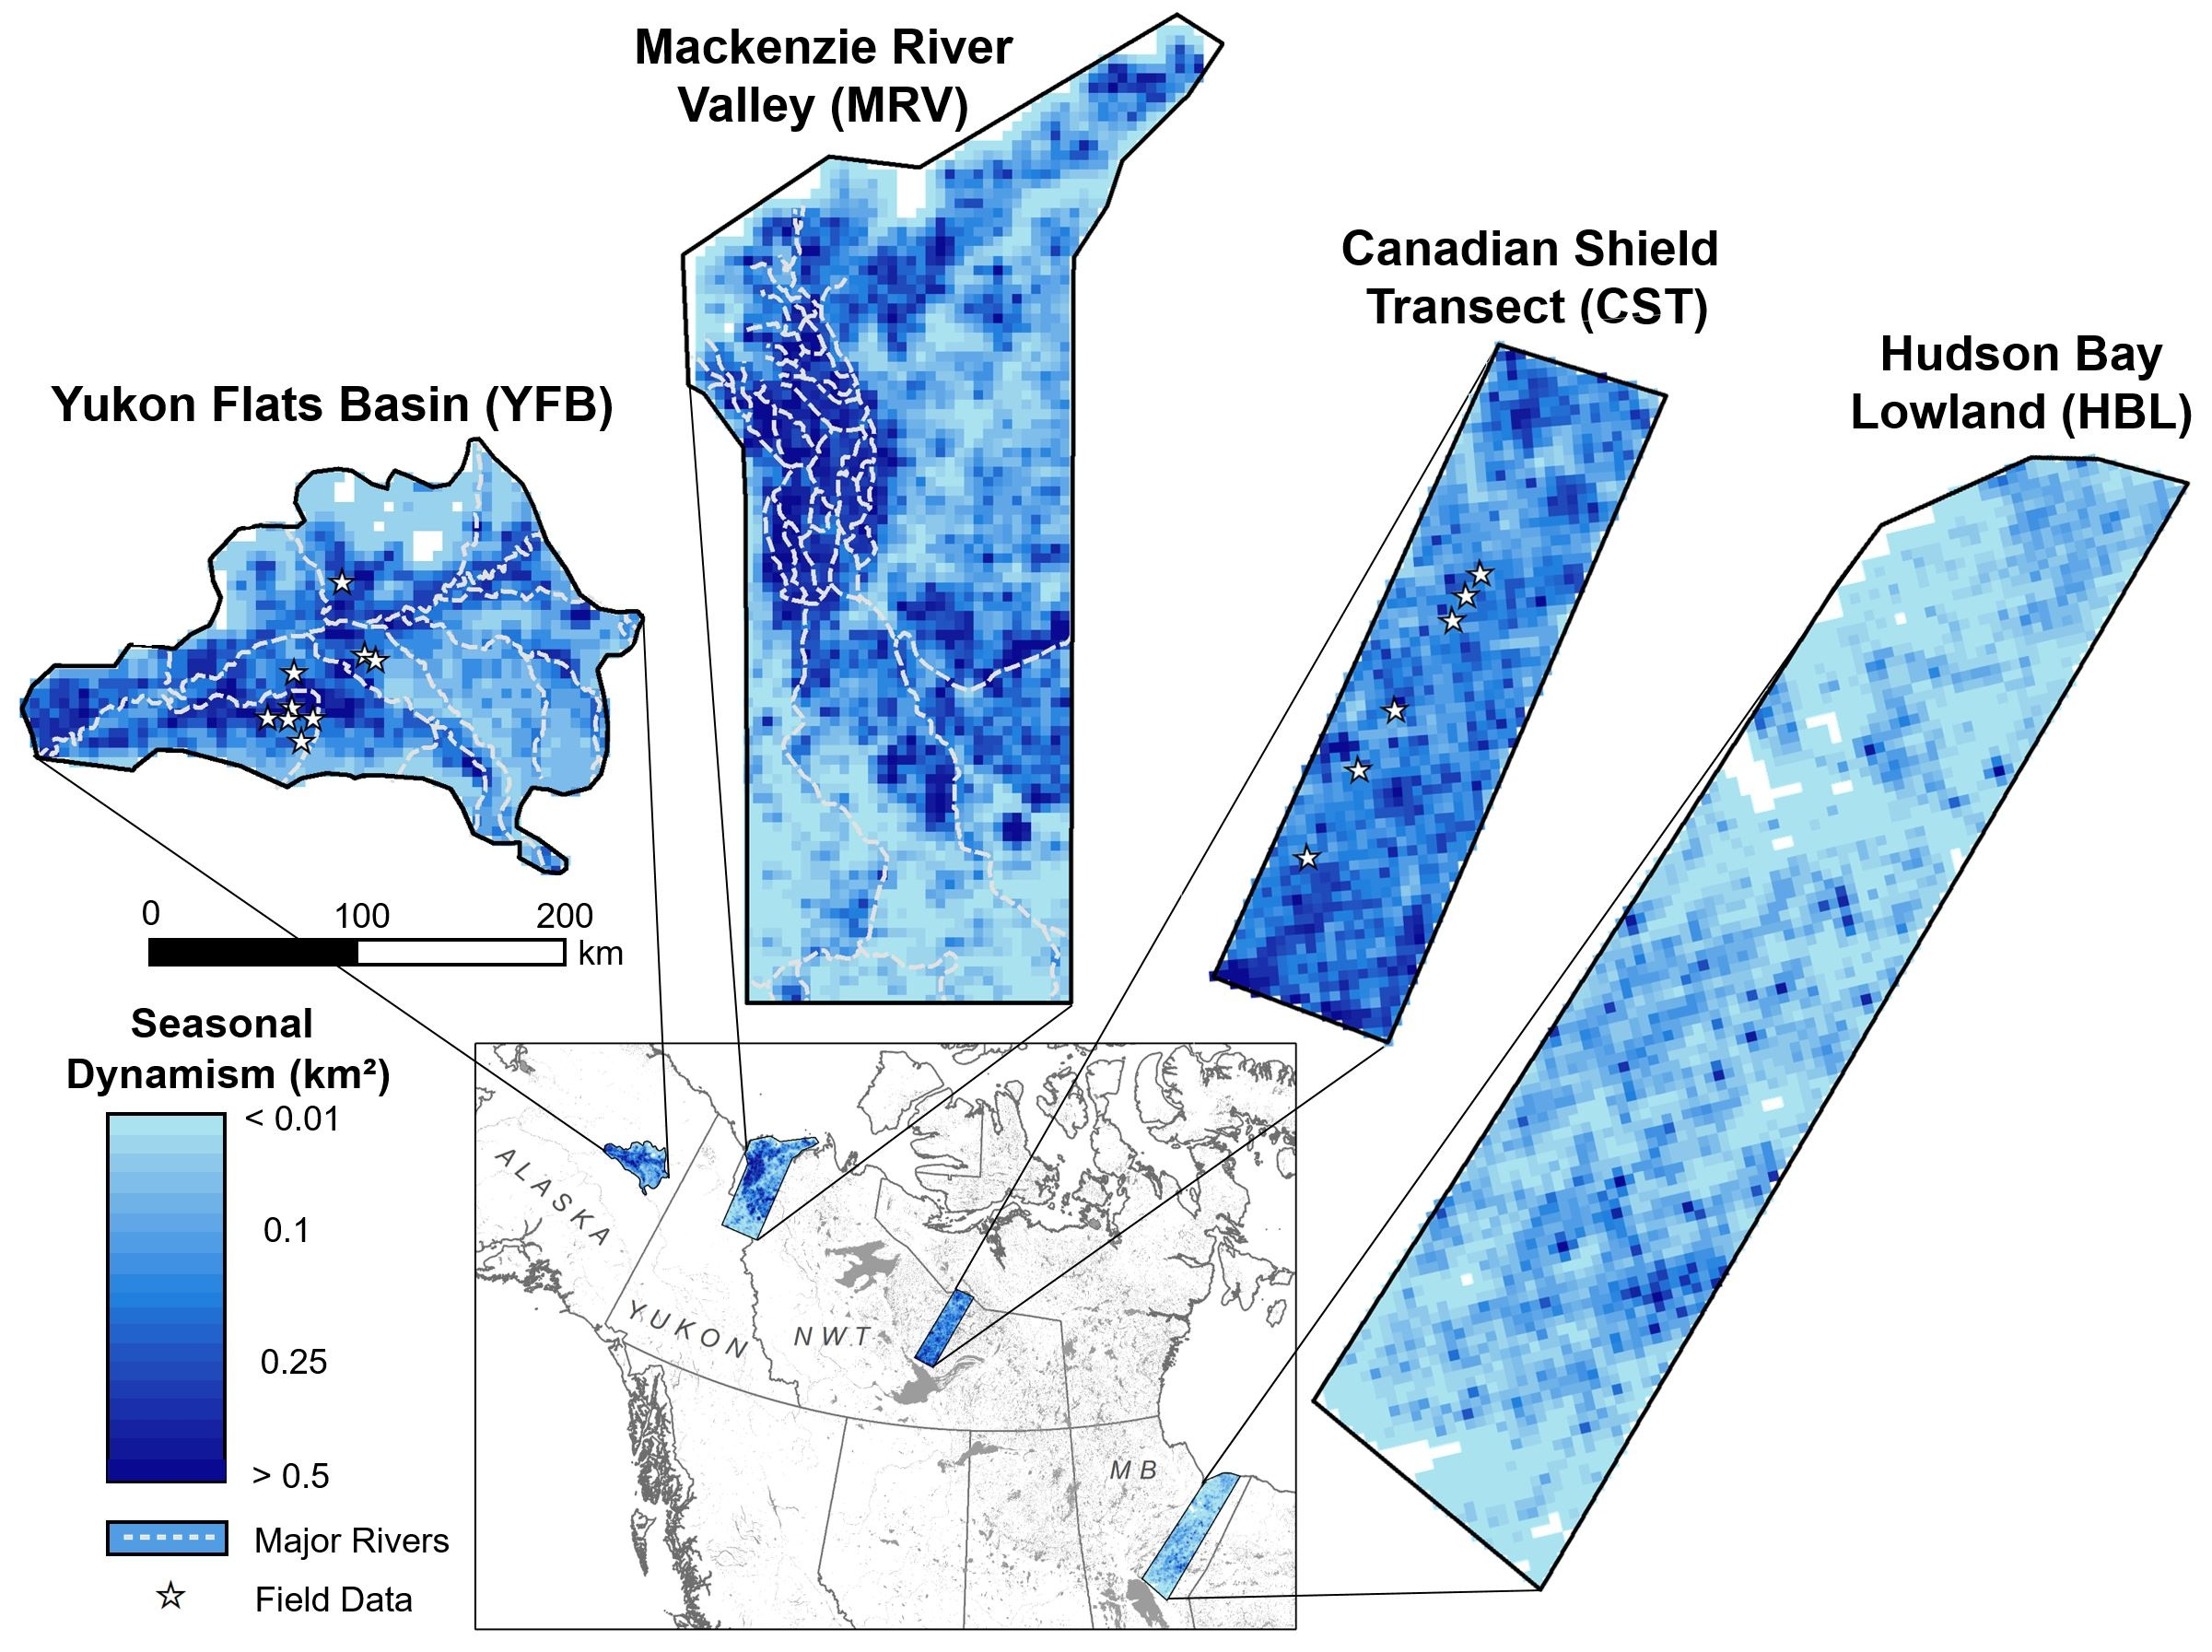 Gridded maps of lake dynamism (seasonal maximum minus seasonal minimum area, km2) for the four study areas analyzed in the 2019 GRL paper. White dashed lines show major river systems, and white stars indicate locations of in situ lake level measurements.